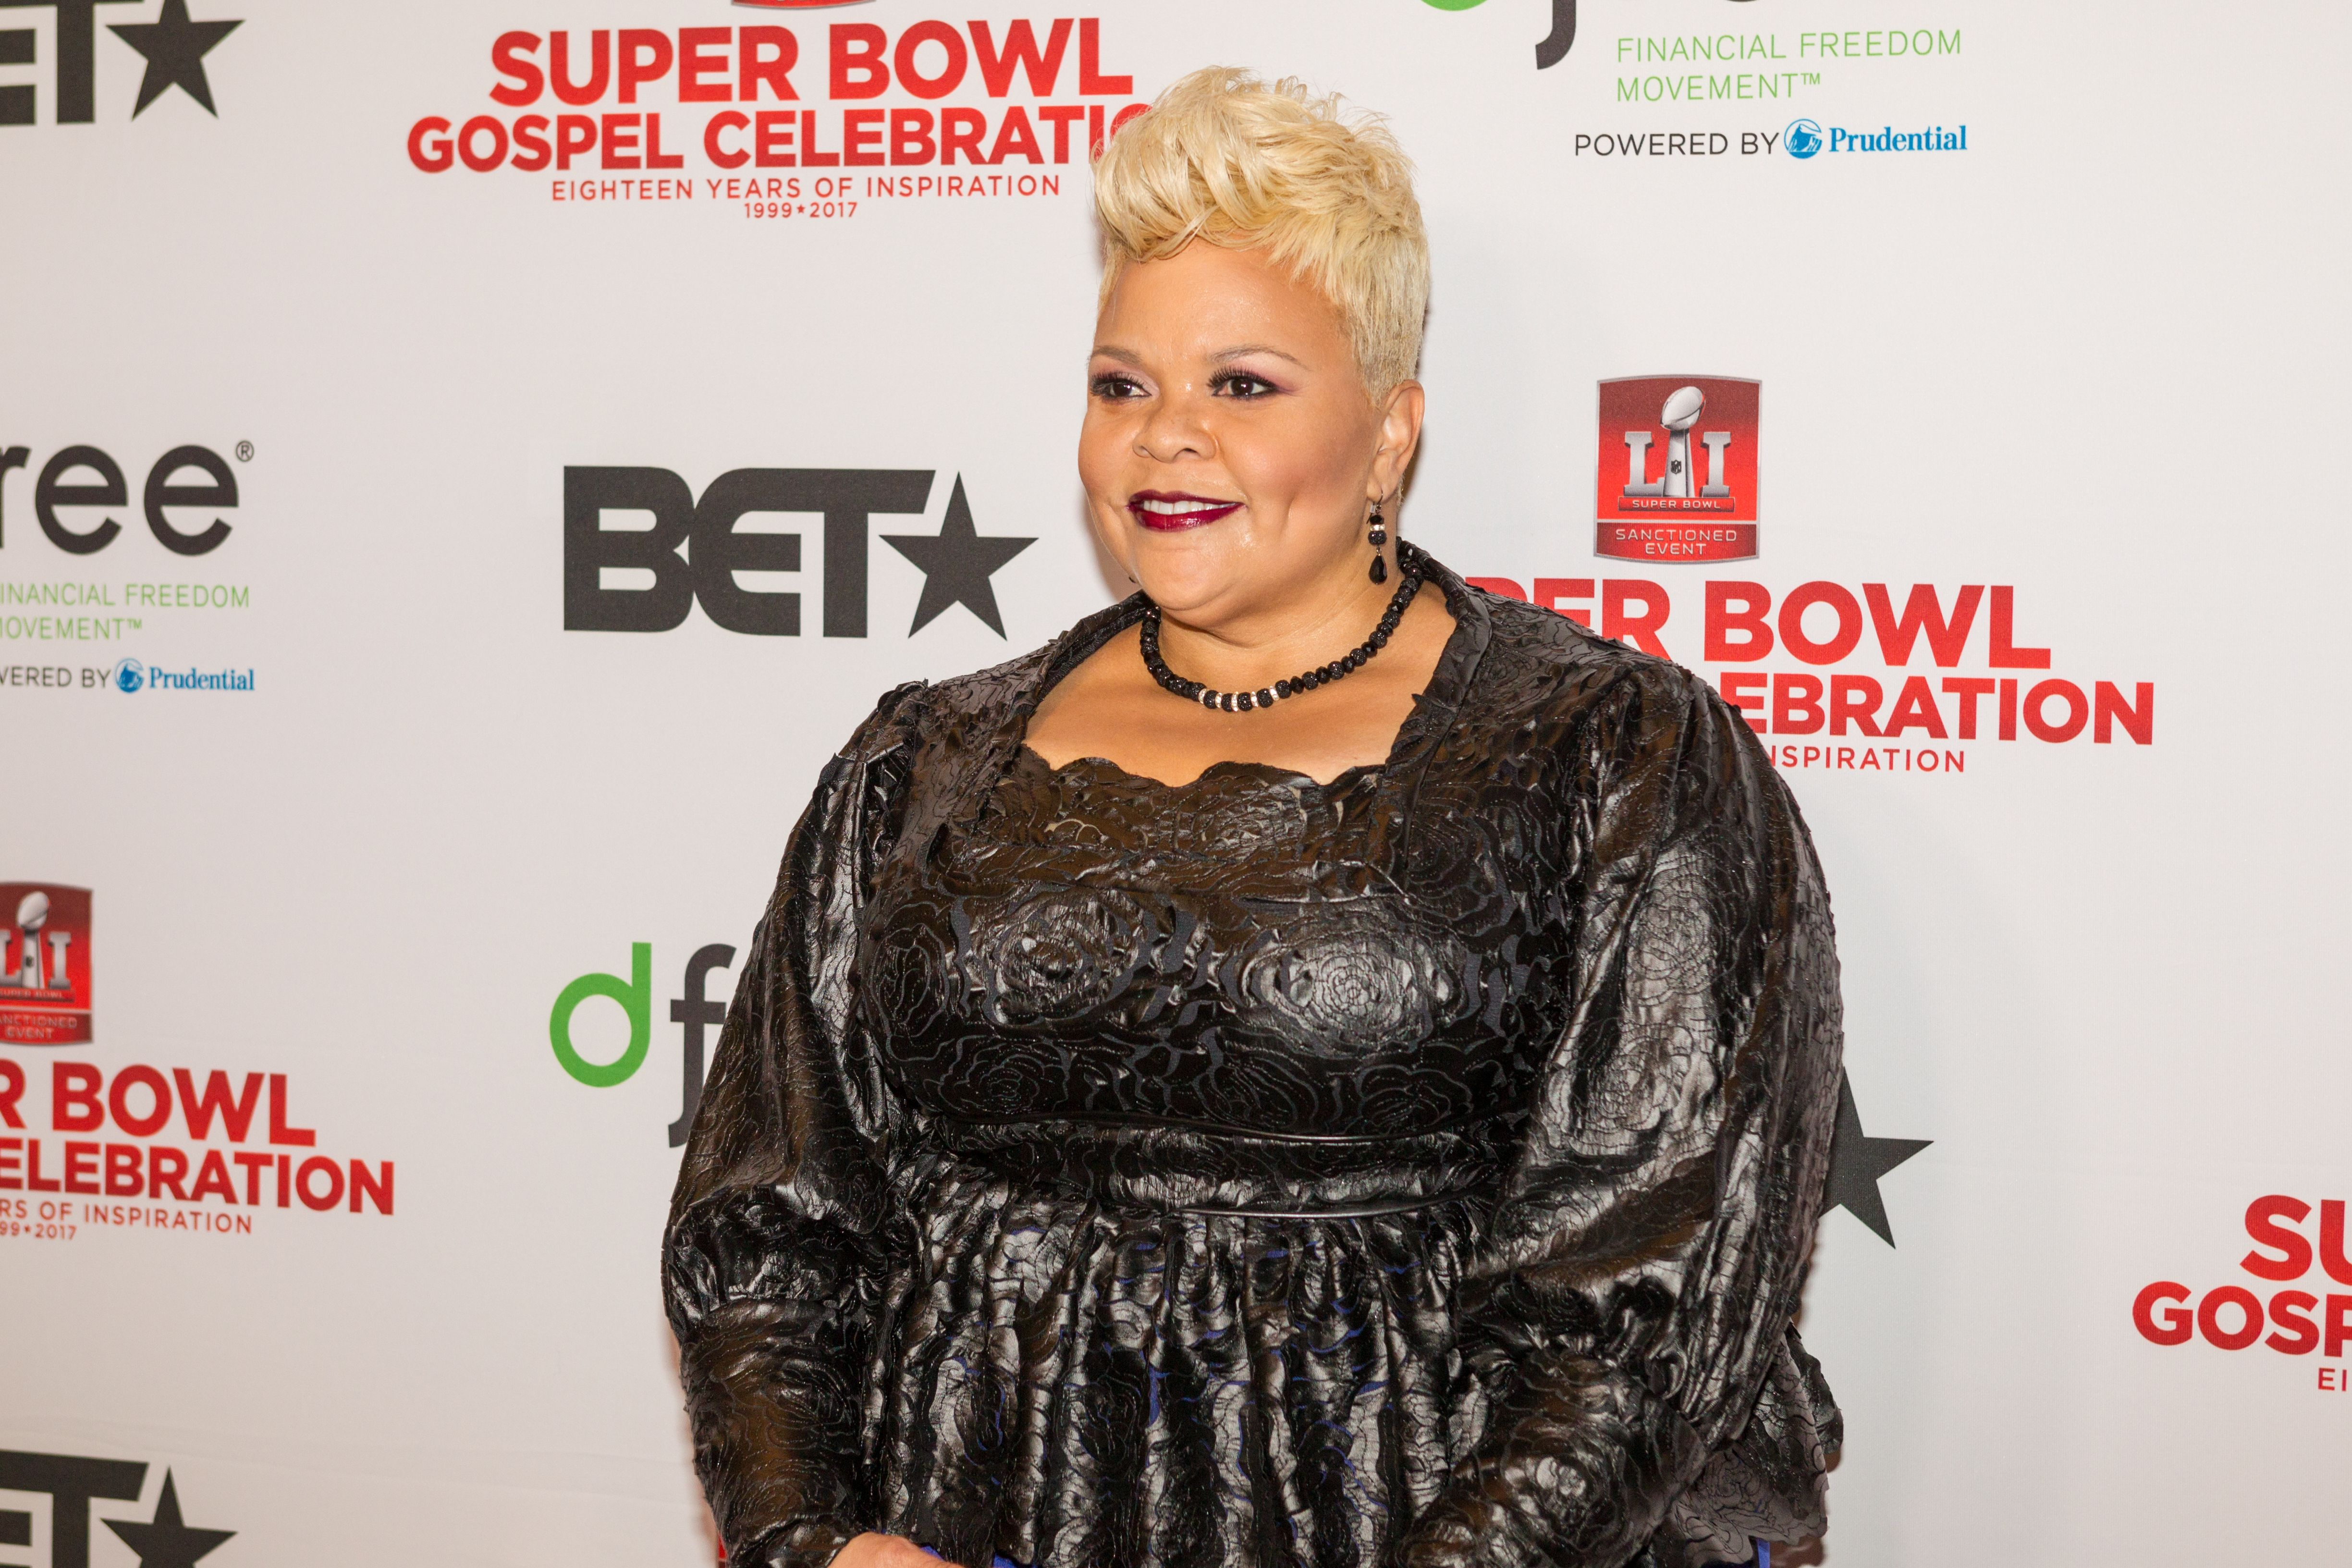 Tamela Mann attends BET's Super Bowl Gospel Celebration at Lakewood Church on February 3, 2017   Photo: Getty Images